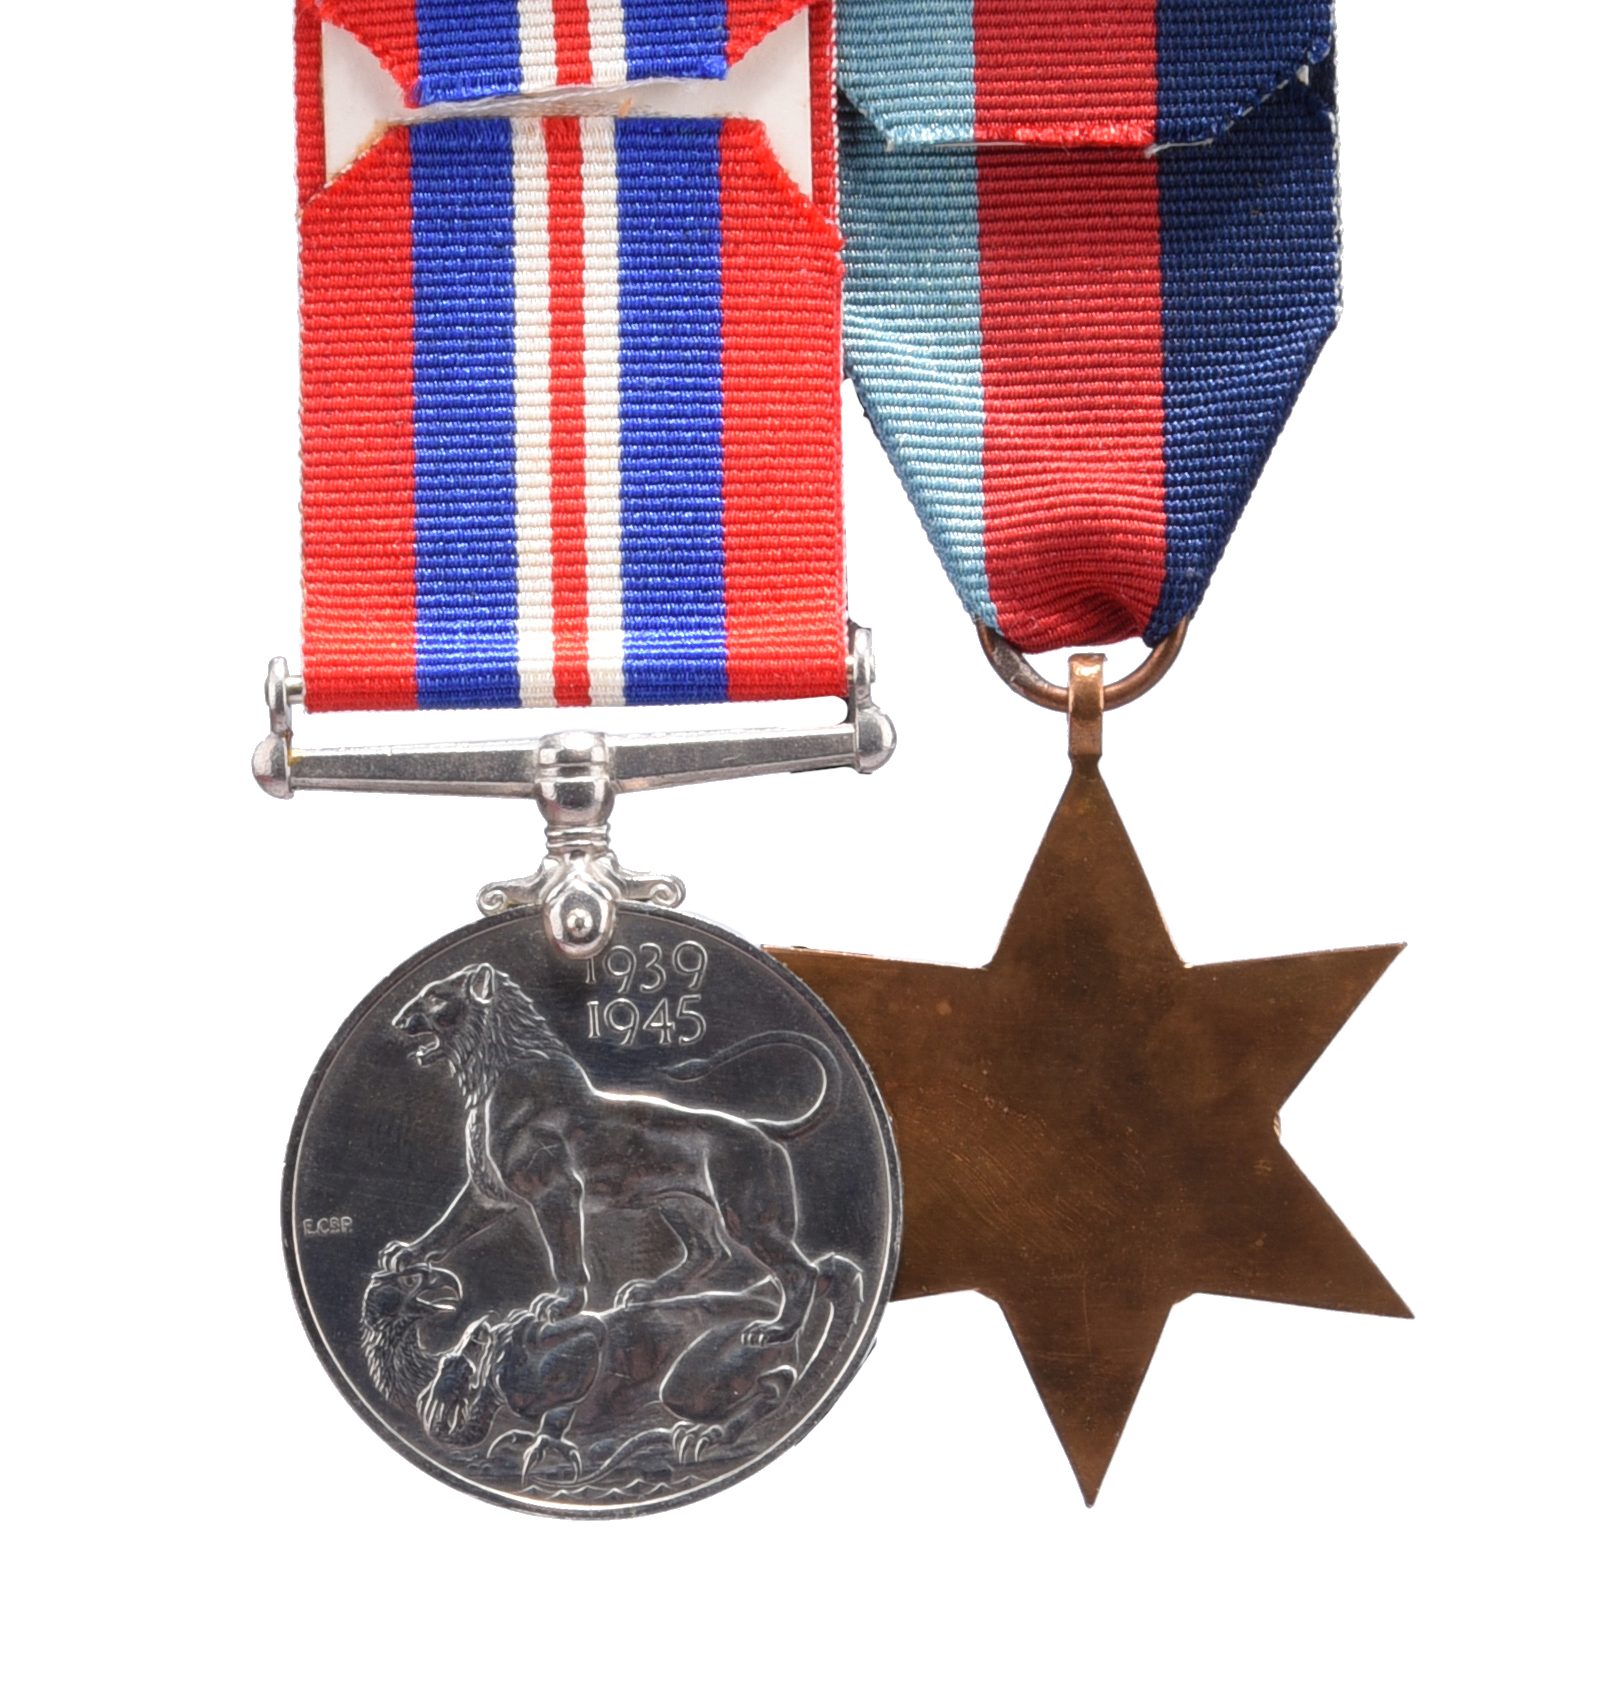 Two medals attributable to Cadet David Arthur Edward Stewart-Cox, Royal Navy, who was lost at sea - Image 2 of 2